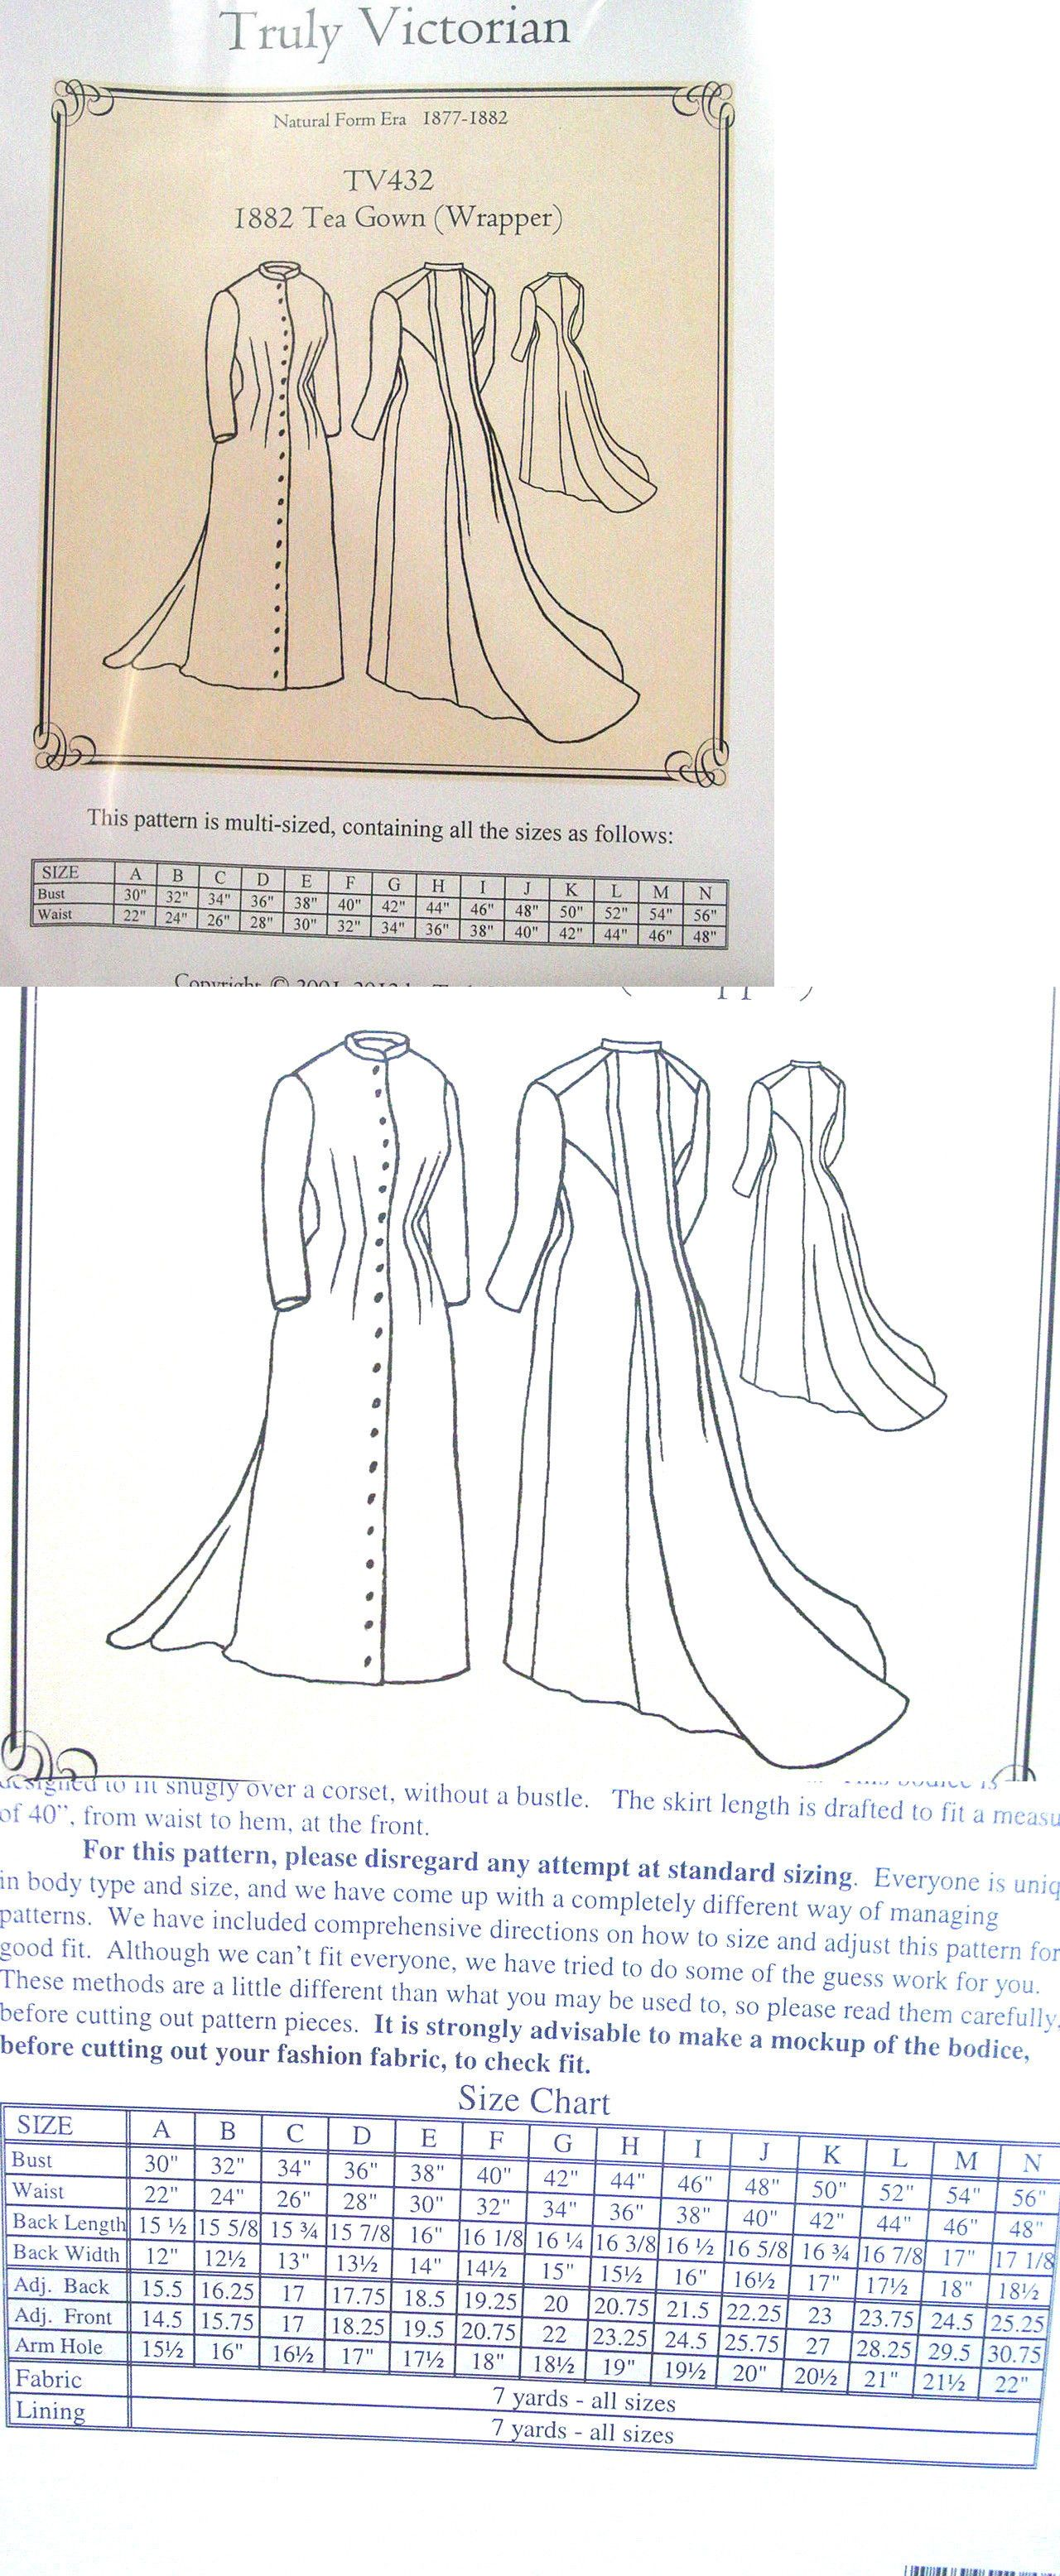 Patterns 163131: Truly Victorian Sewing Pattern Tv432 1882 Tea Gown ...